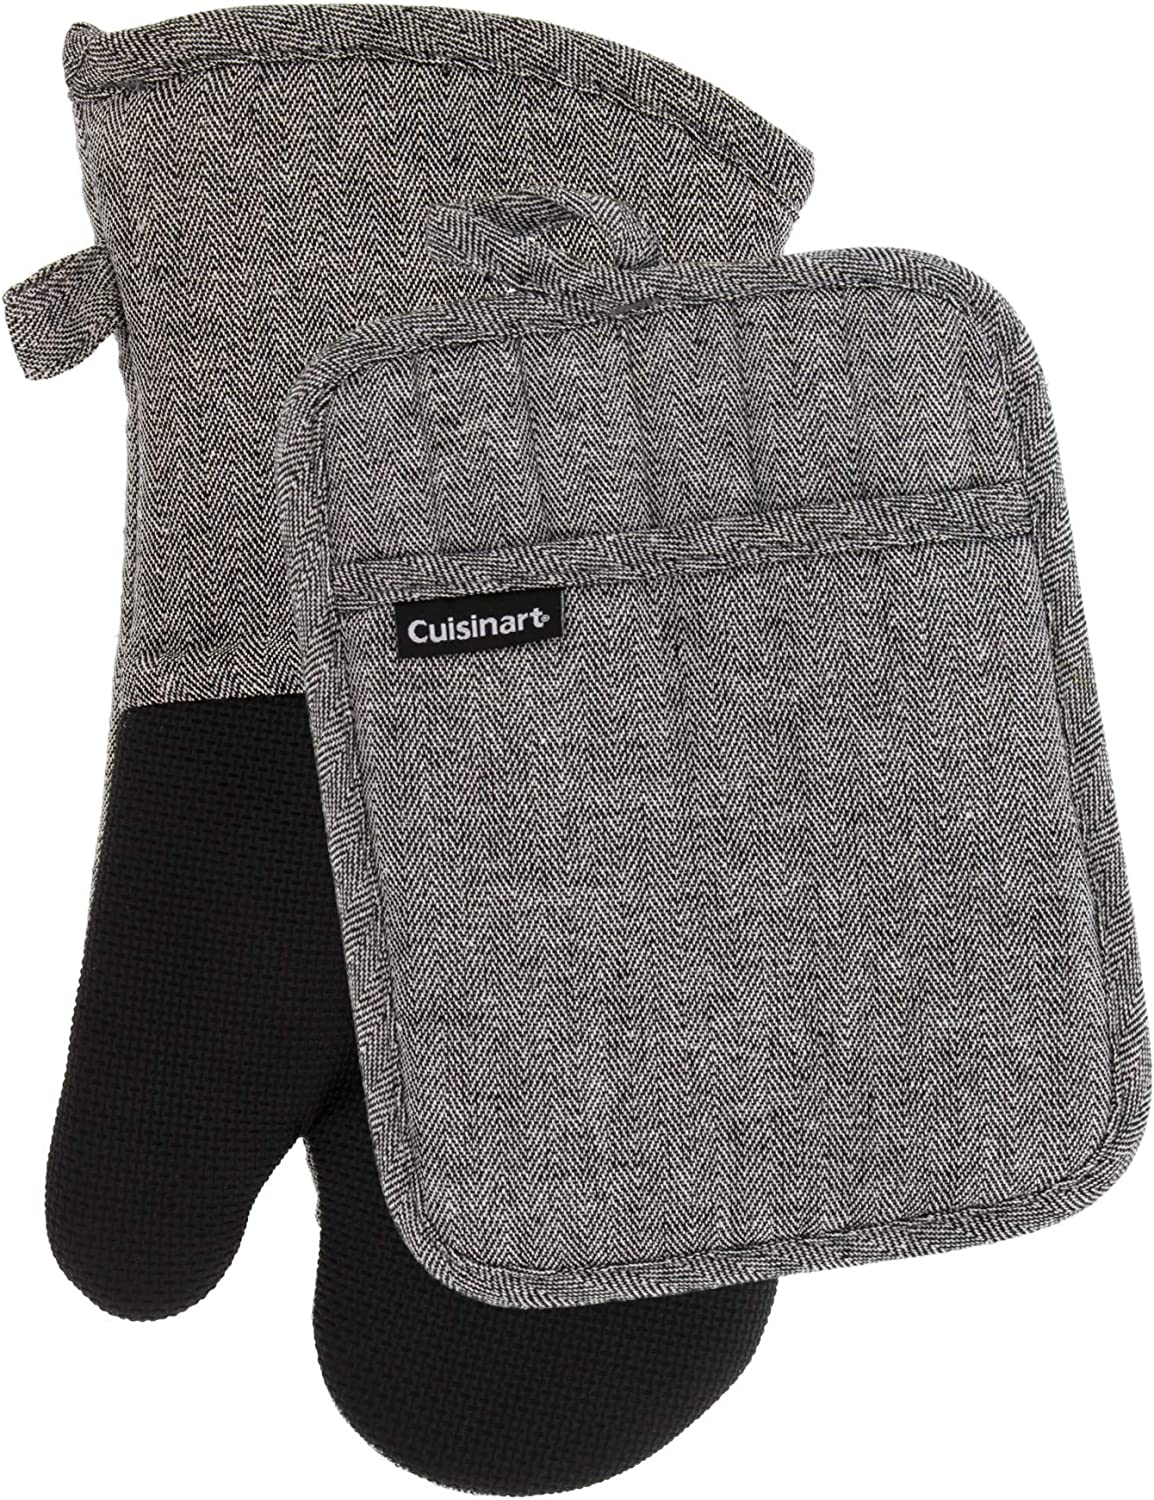 Cuisinart Neoprene Oven Mitts and Potholder Set - Heat Resistant Oven Gloves to Protect Hands and Surfaces with Non-Slip Grip, Hanging Loop - Ideal for Handling Hot Cookware Items - Chevron, Black